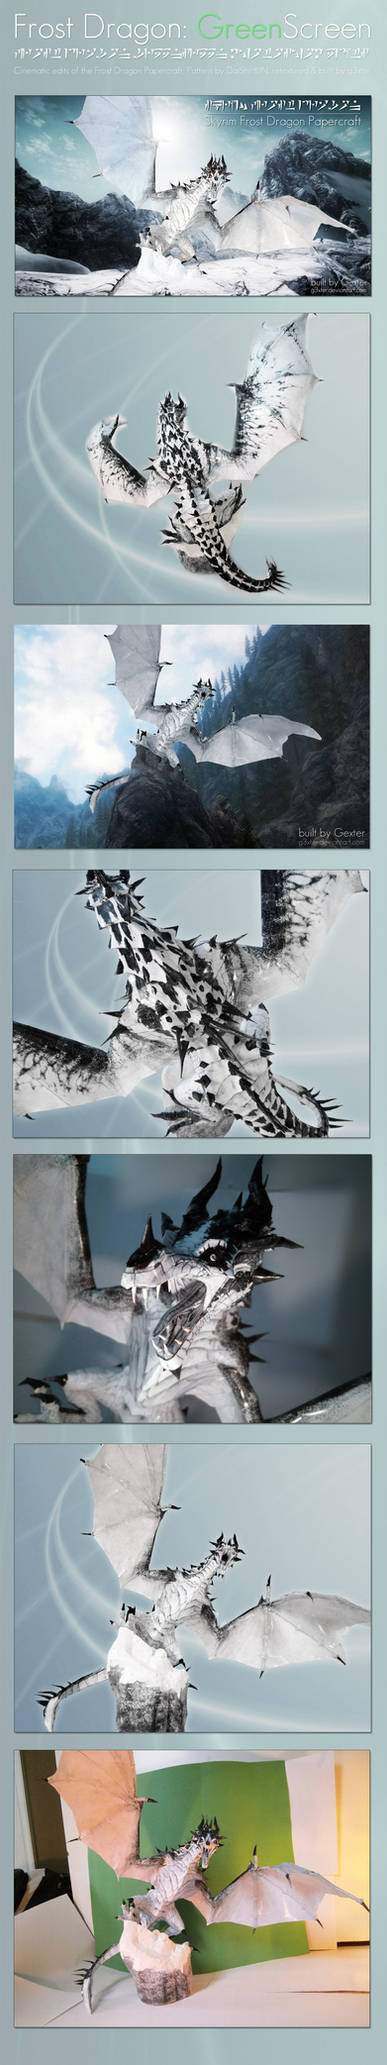 Skyrim Frost Dragon Papercraft - Greenscreen comp.